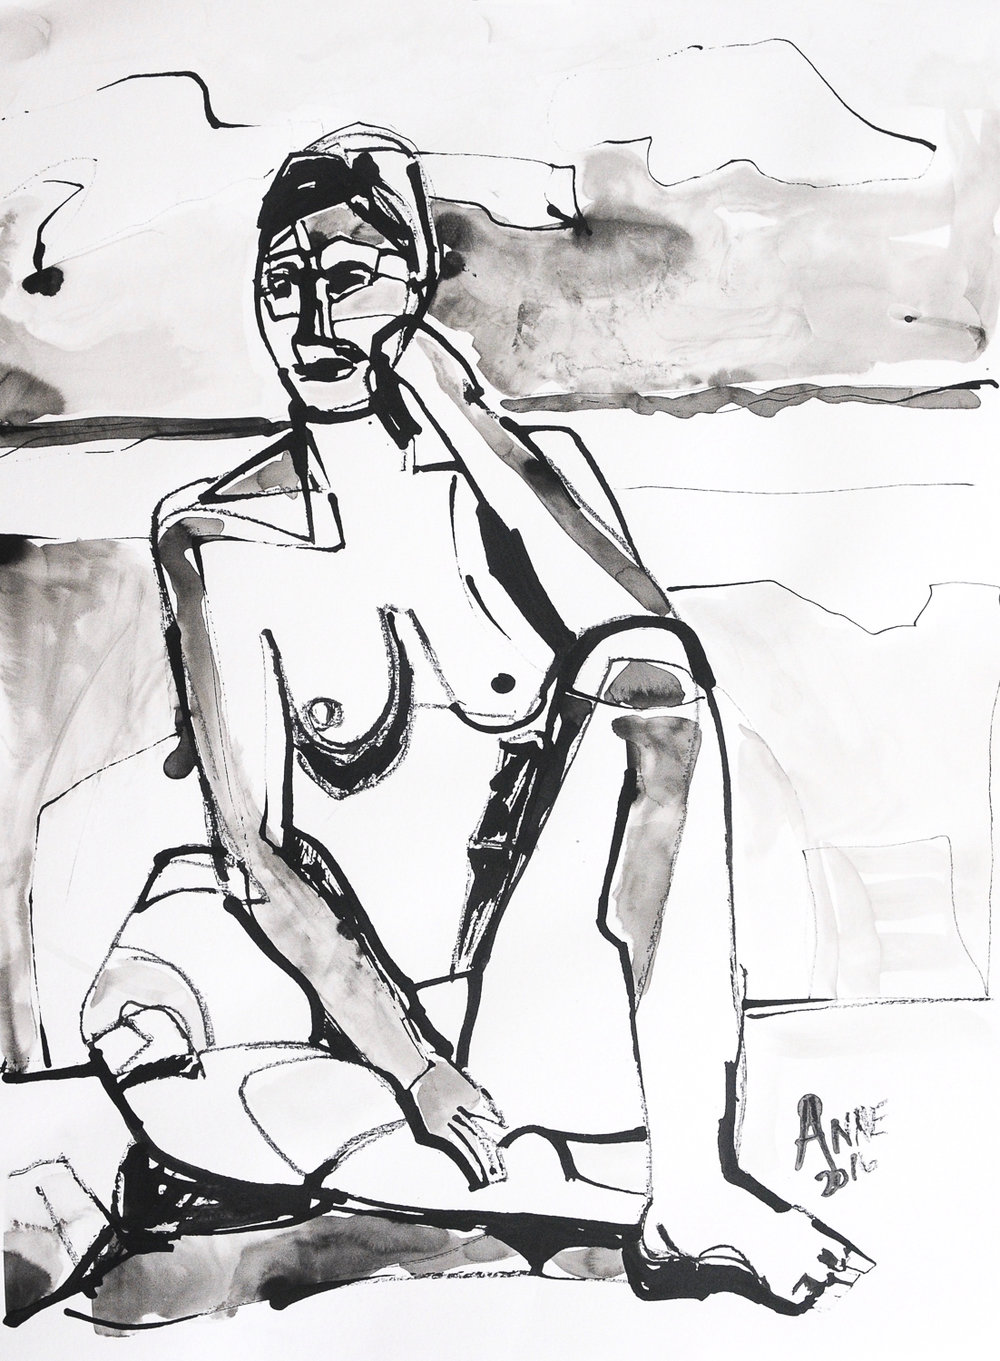 """Seated Figure in Ink   Ink on Paper   18x24"""""""